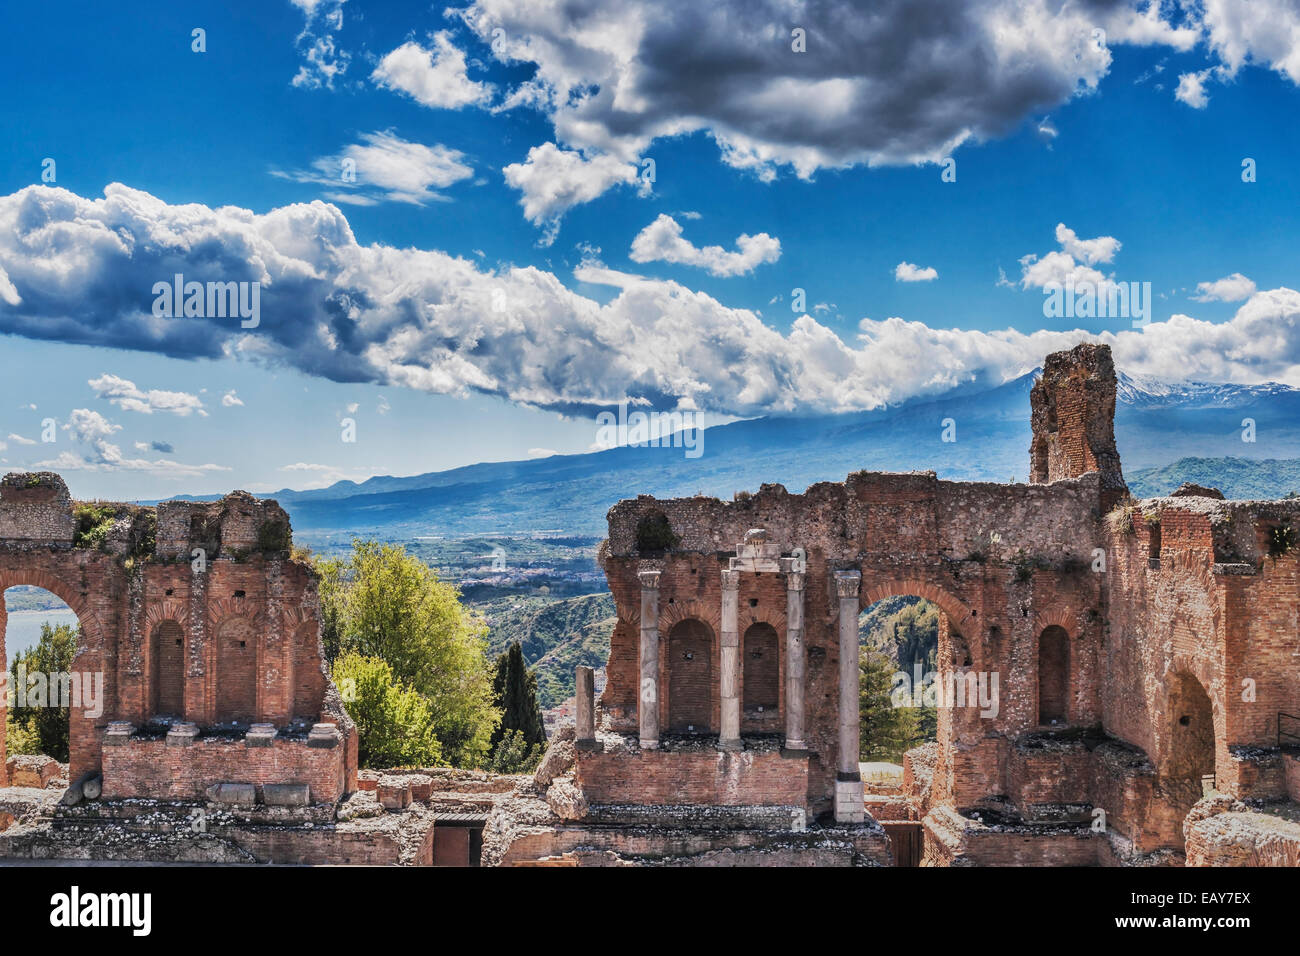 The ancient theater of Taormina is also known as Teatro Greco (Greek theater), Province Messina, Sicily, Italy, Stock Photo